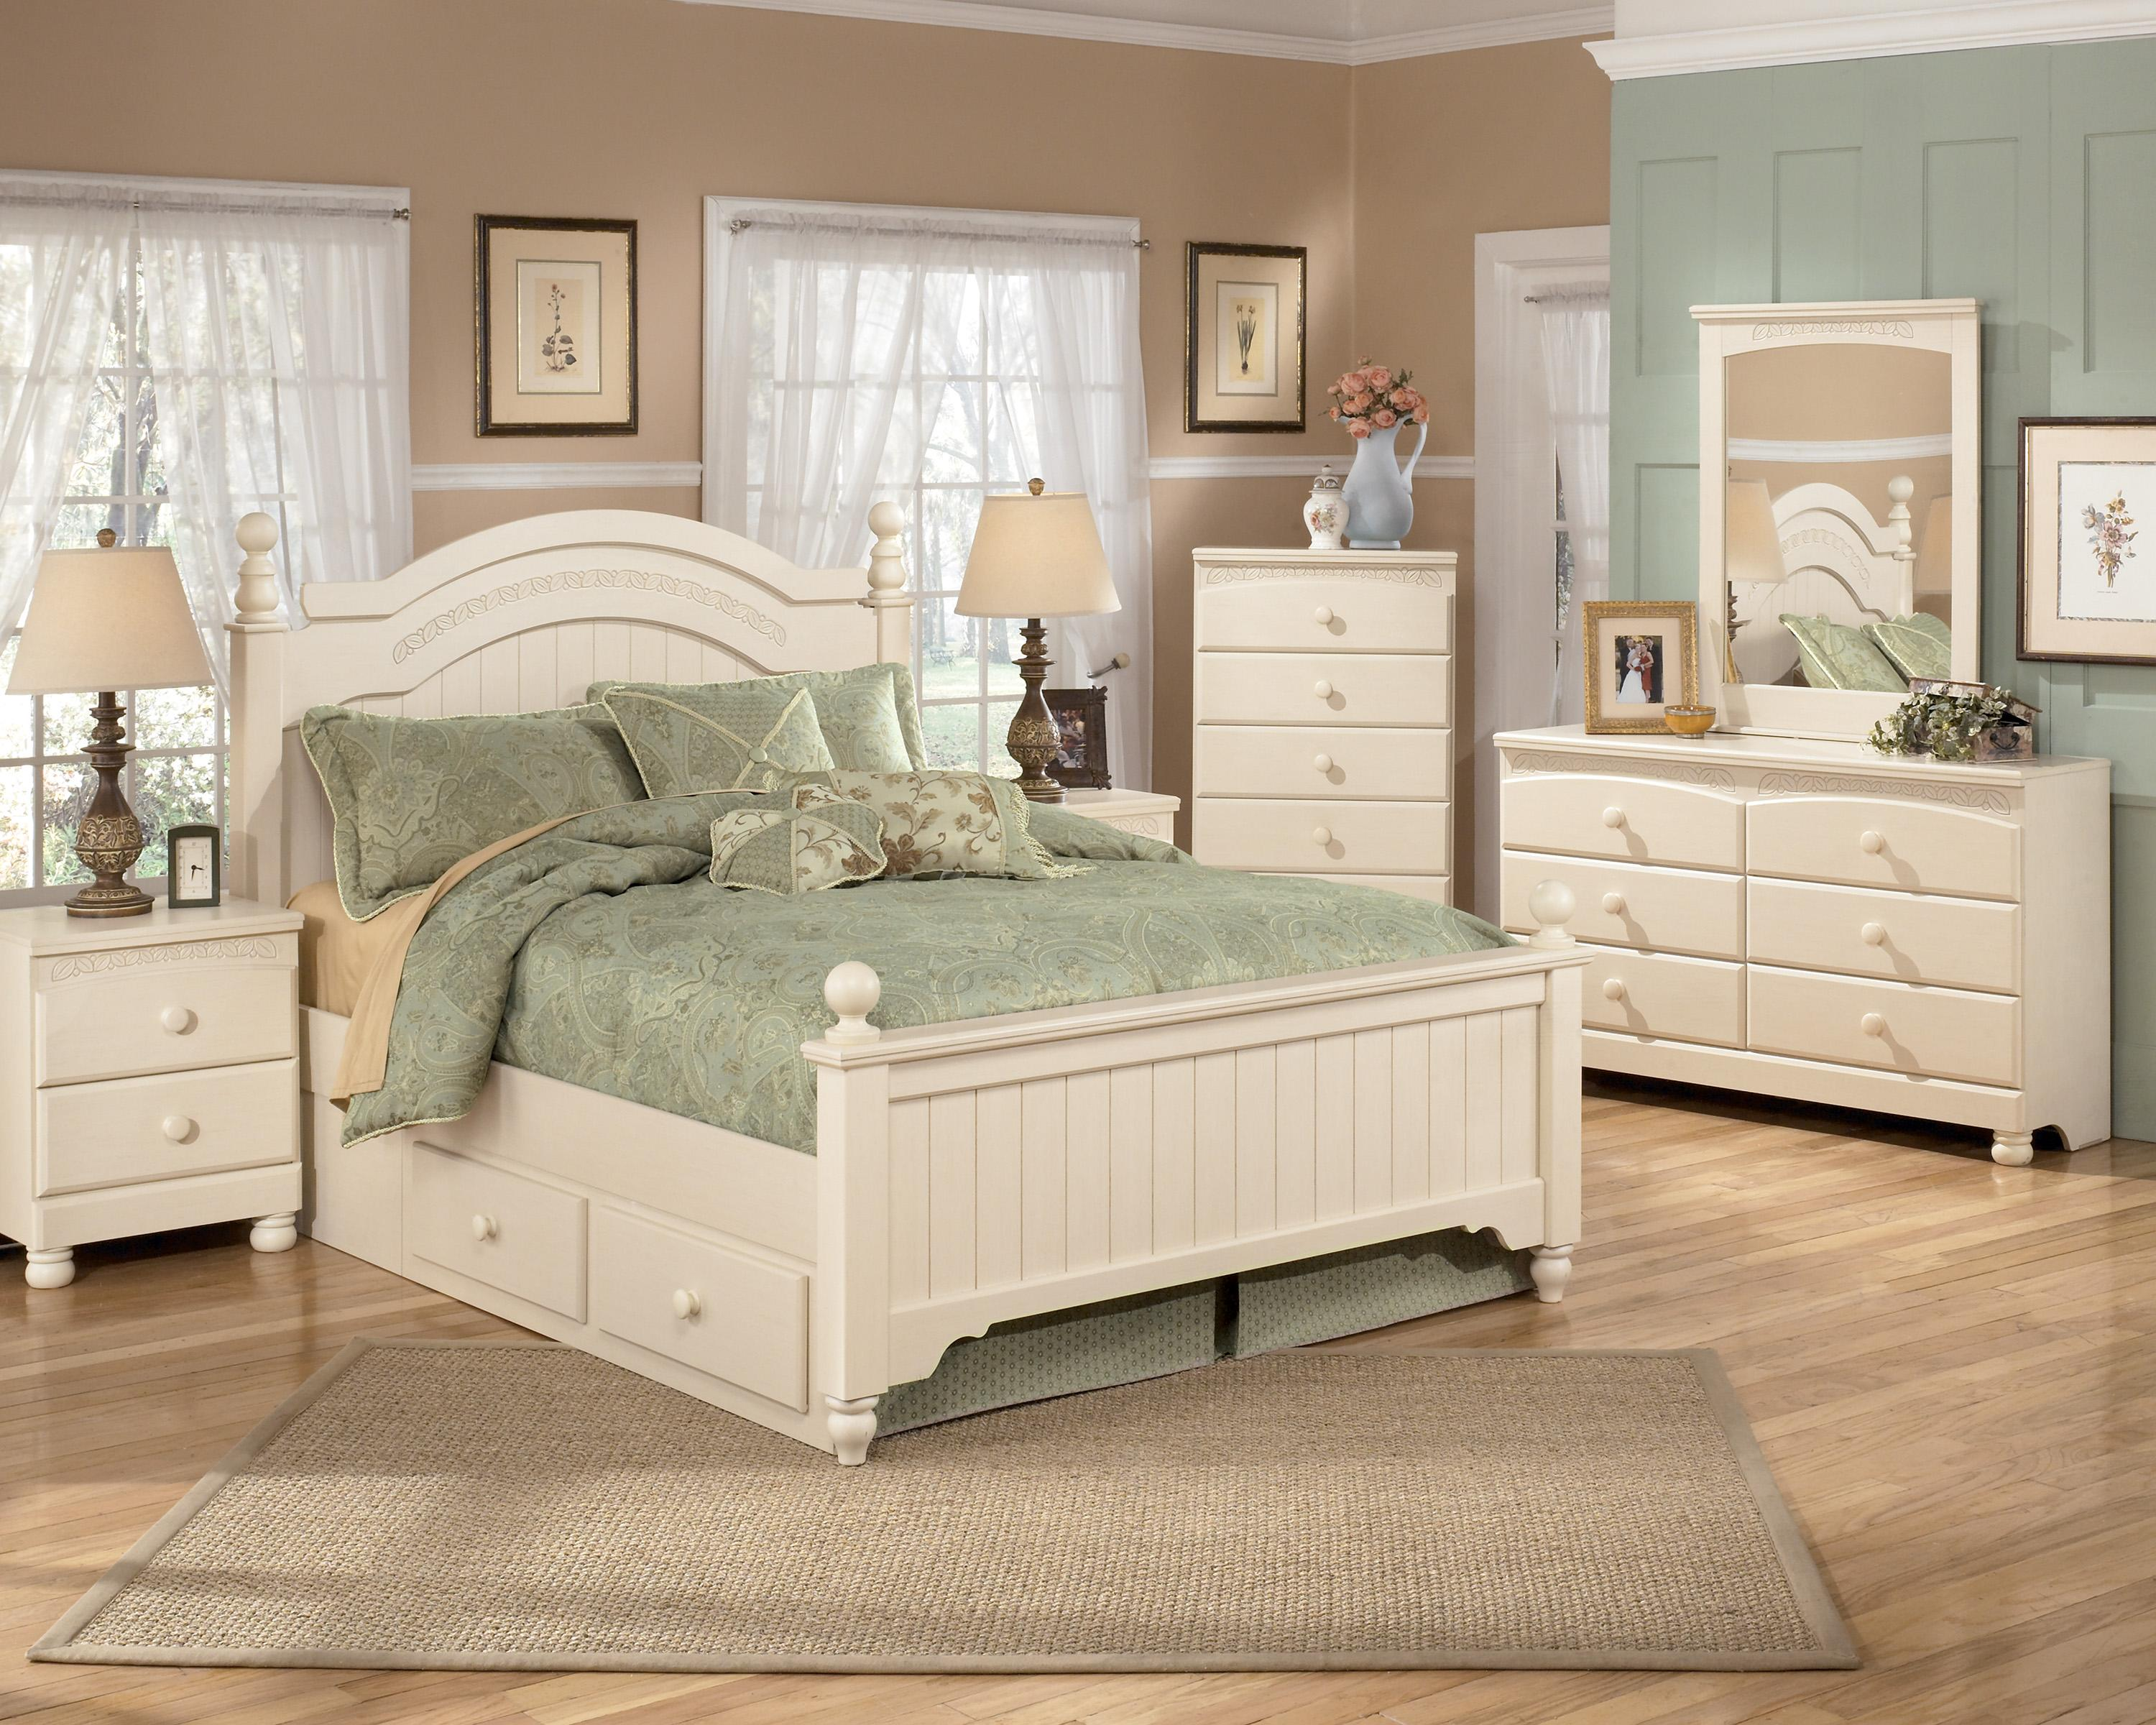 Signature Design By Ashley Cottage Retreat Full Bedroom Group John V Schultz Furniture